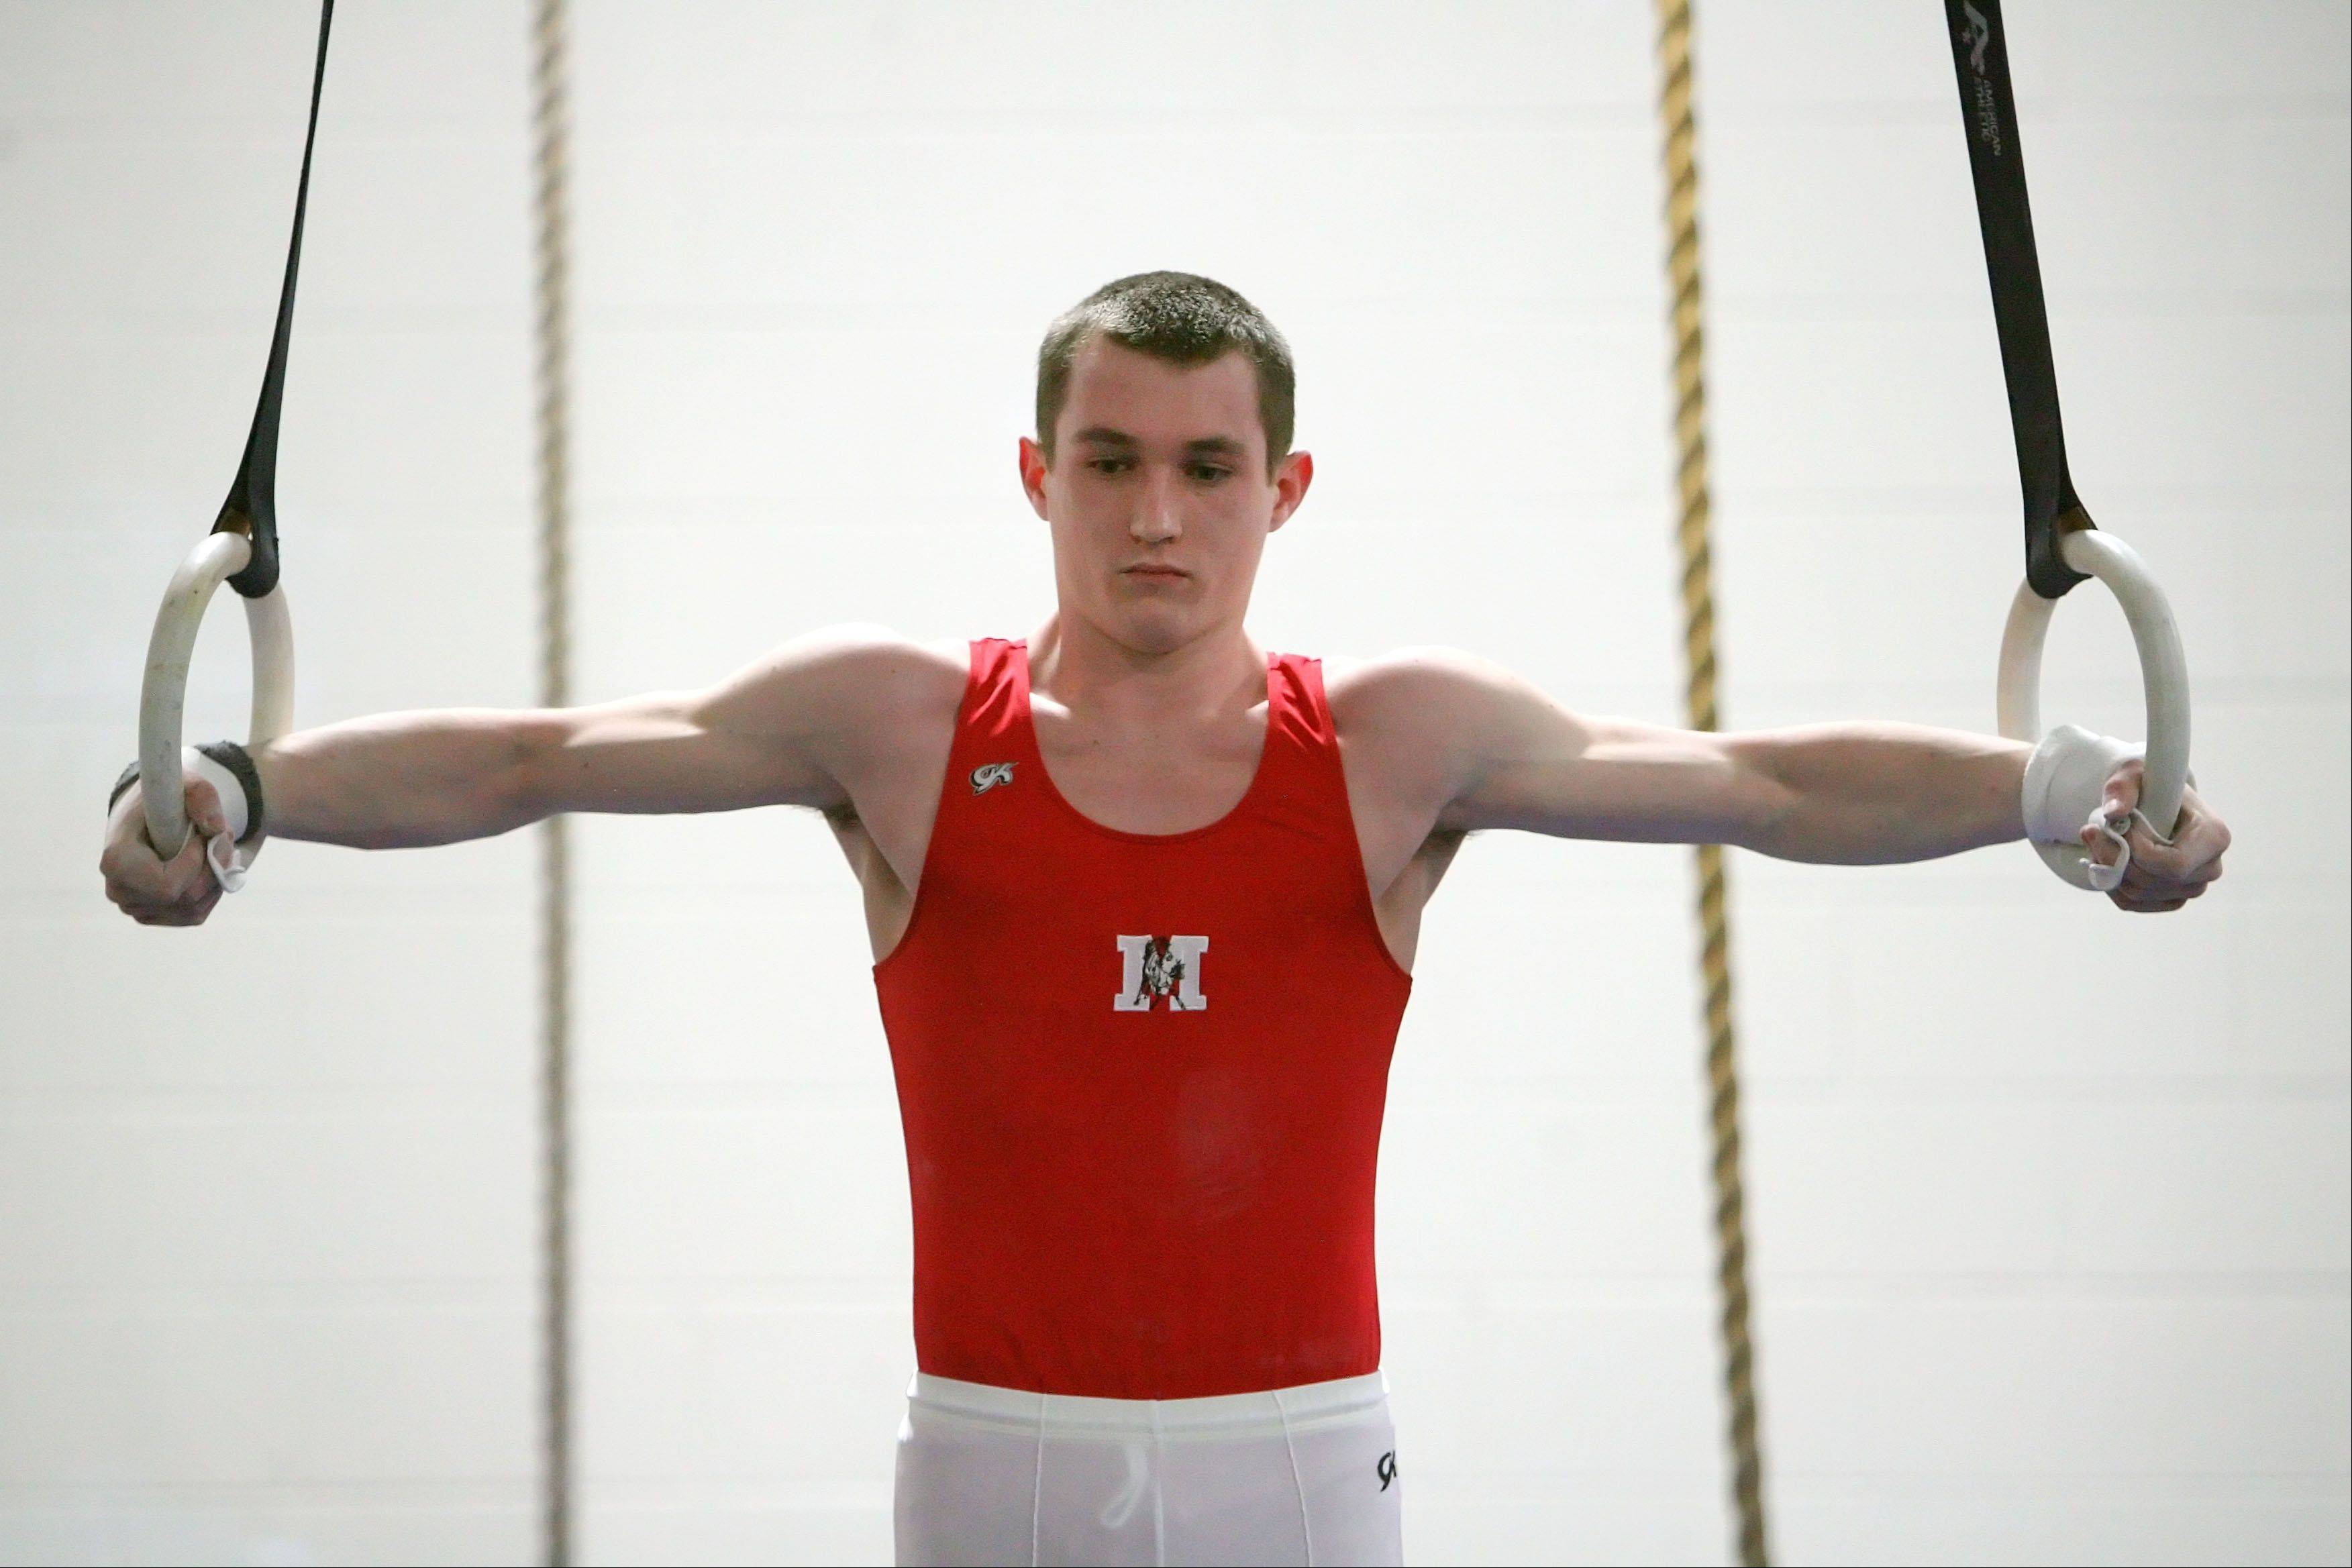 Mundelein's Cameron Mueller competes on still rings Tuesday at Libertyville.